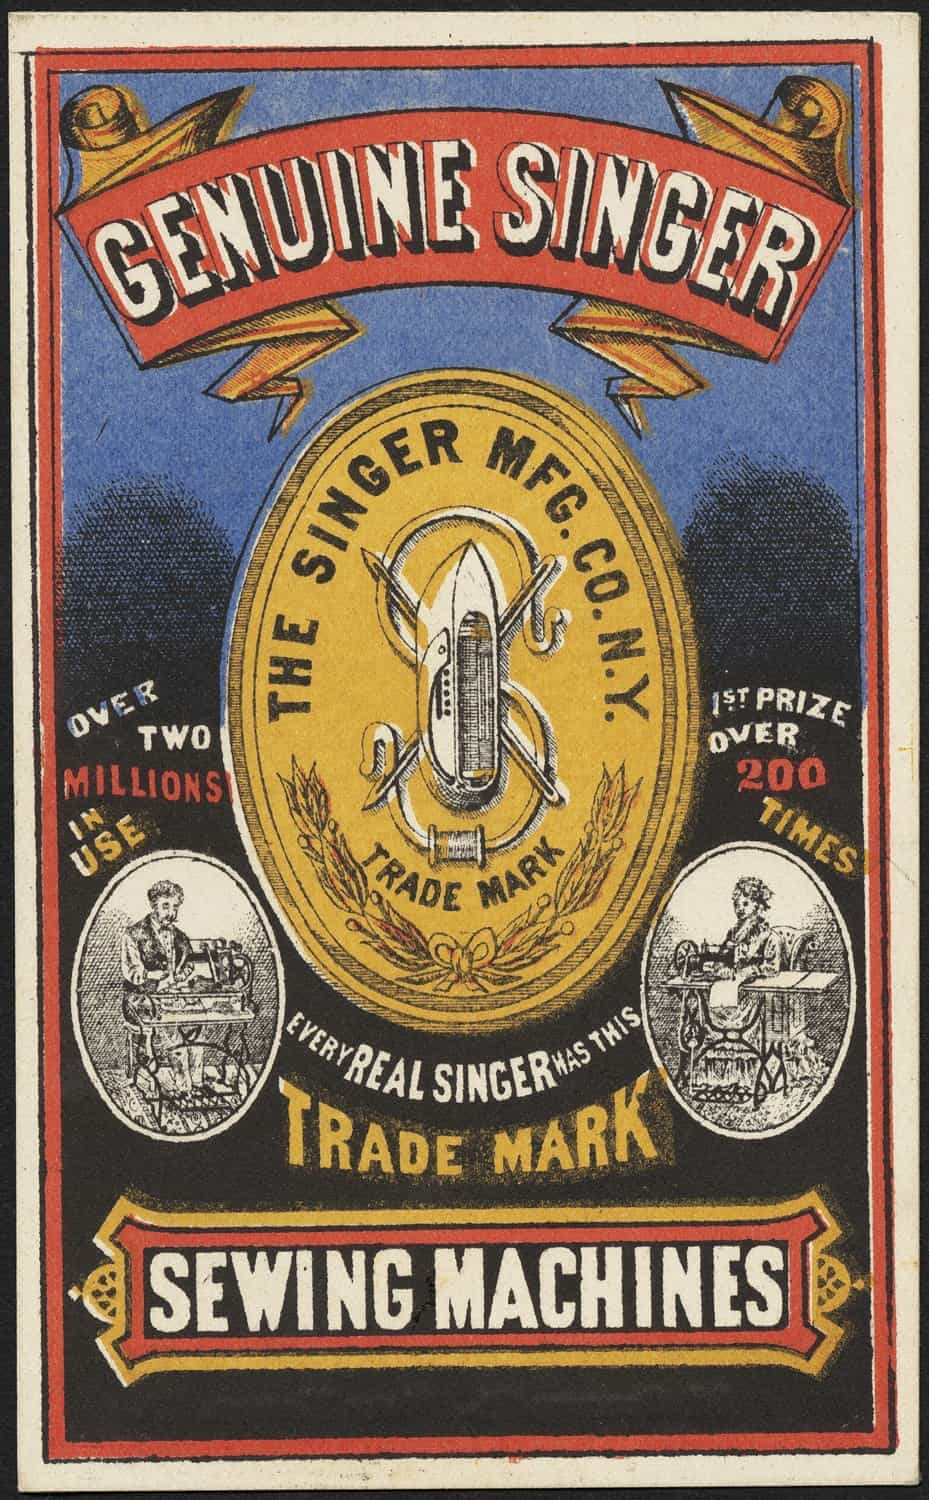 Genuine Singer Sewing Machine Advertisement Poster 1885